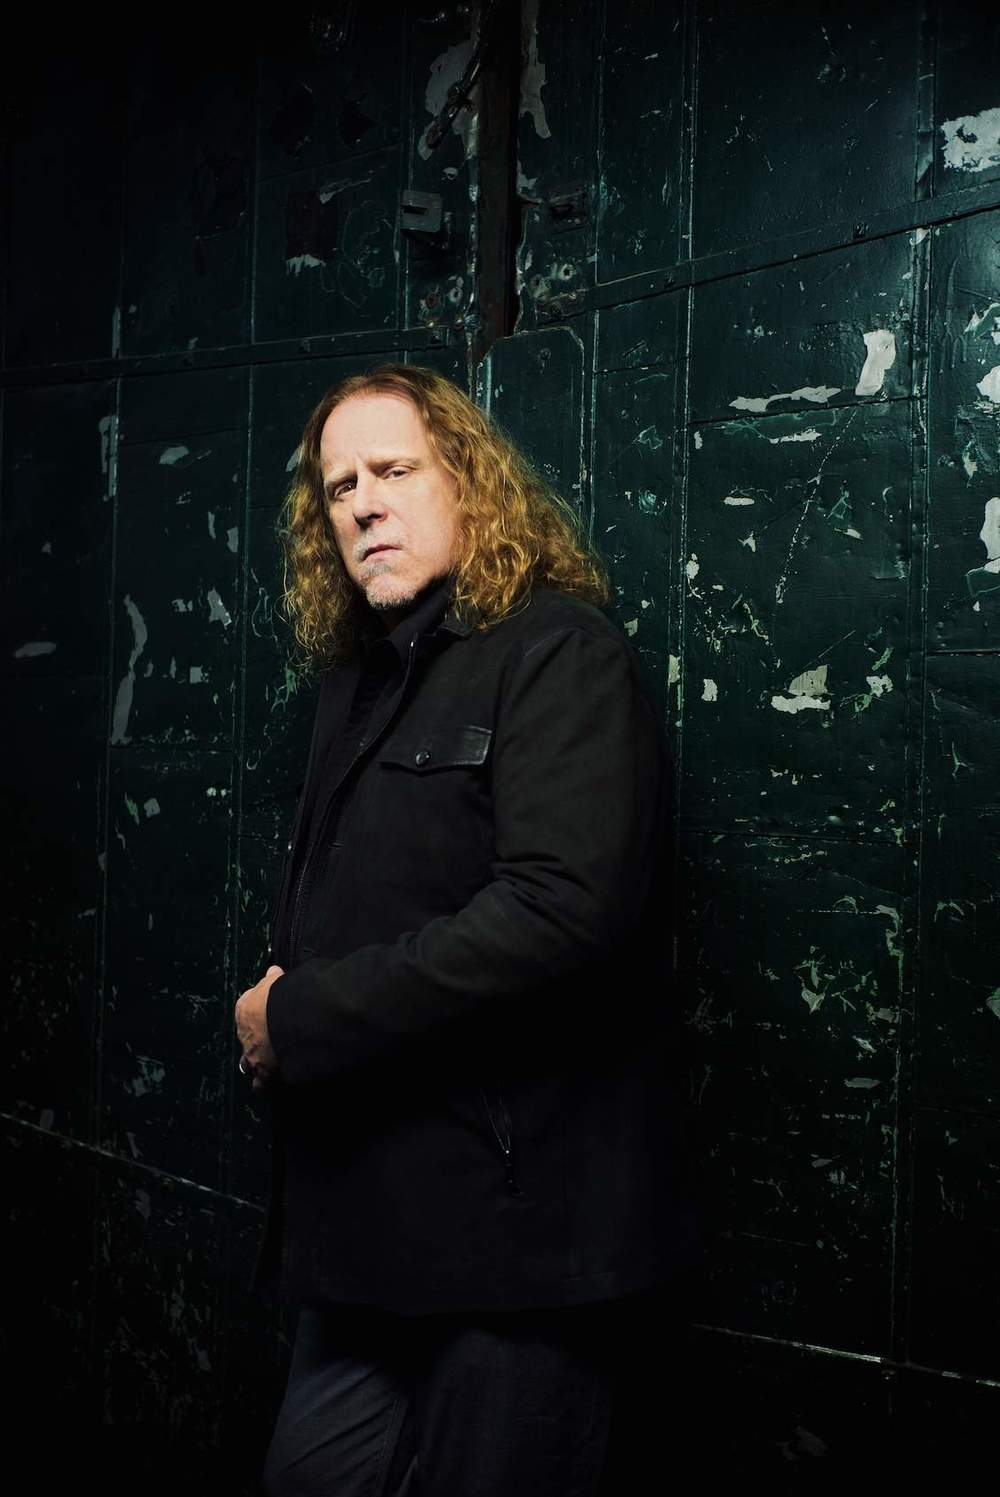 Former Allman Brothers Band guitarist and Gov't Mule front man performs with the West Virginia Symphony for the Jerry Garcia Symphonic Celebration. Credit: DANNY CLINCH | Courtesy photo